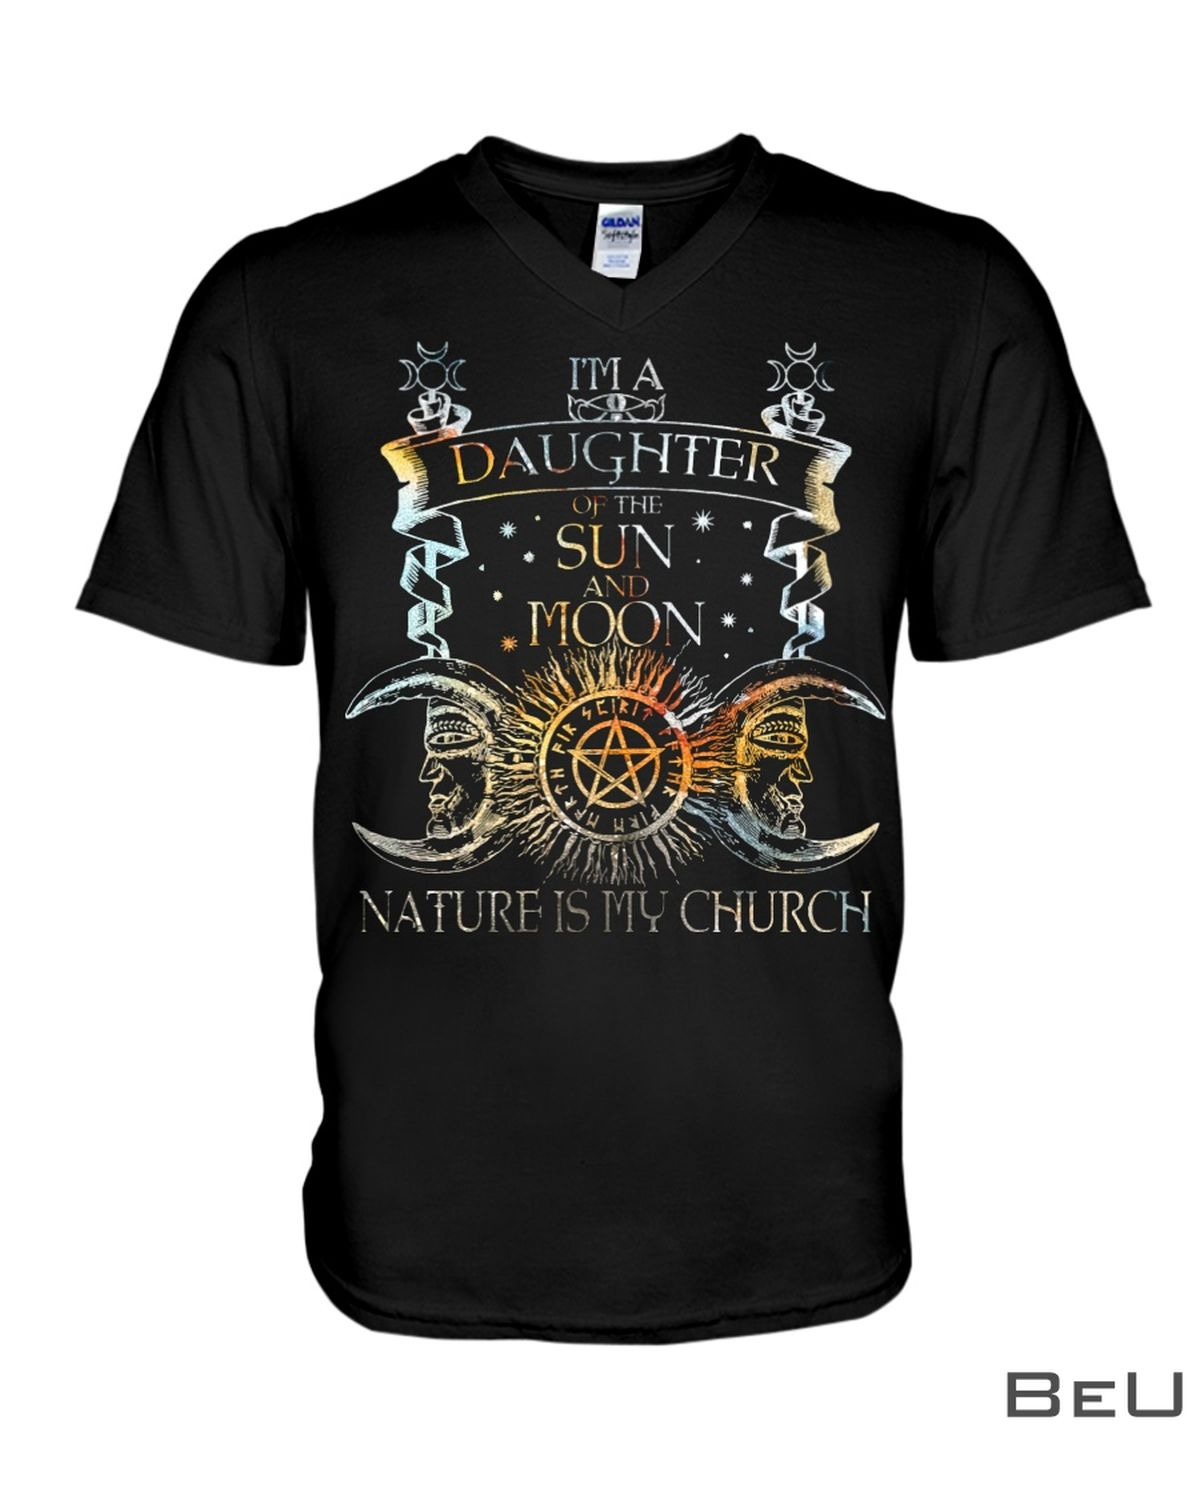 Daughter Of The Sun And Moon Nature Is My Church Shirtx